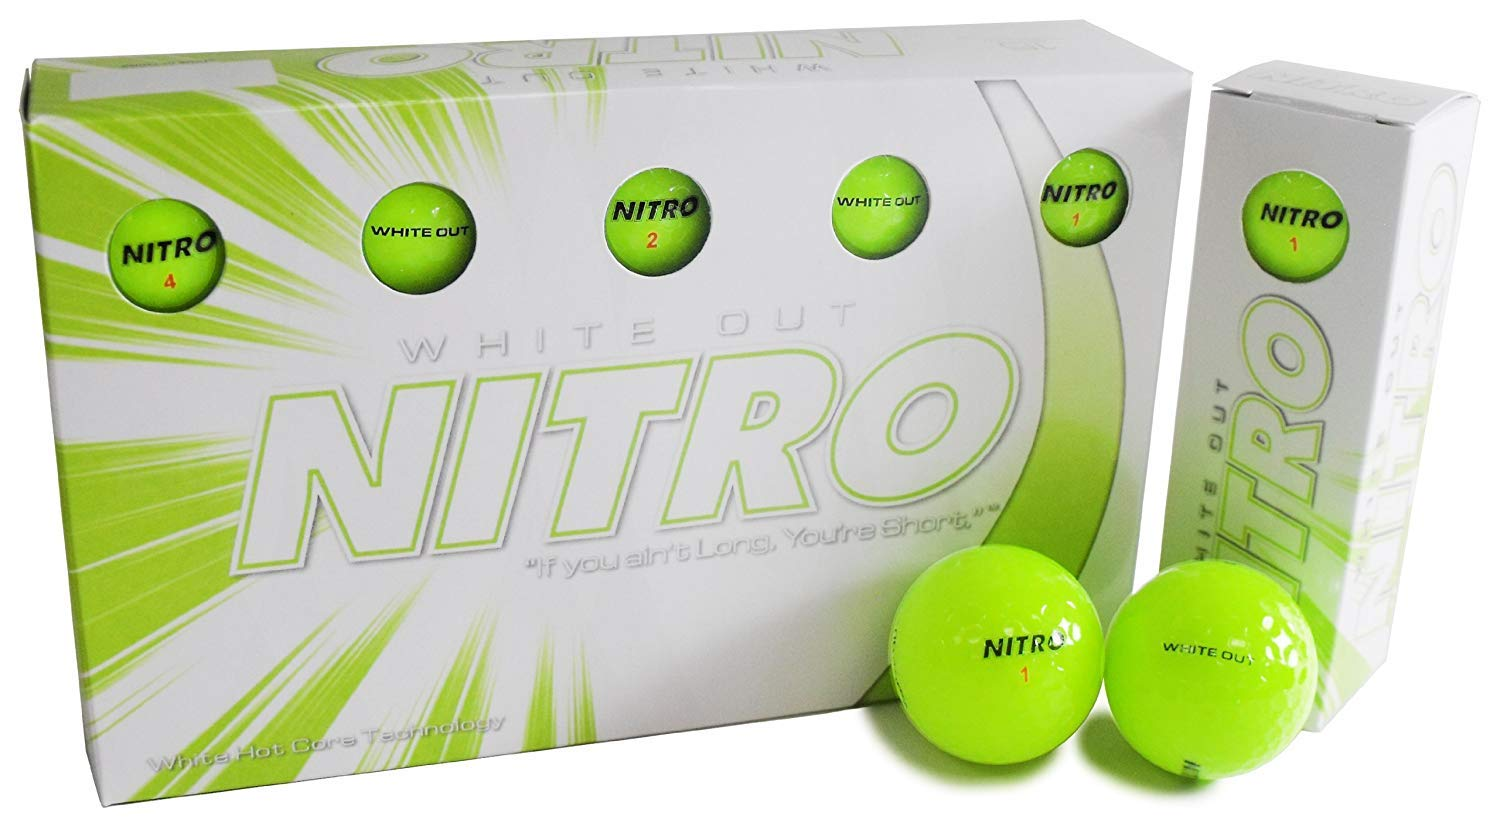 Amazon.com: Pelotas de golf Nitro White Out: Sports & Outdoors